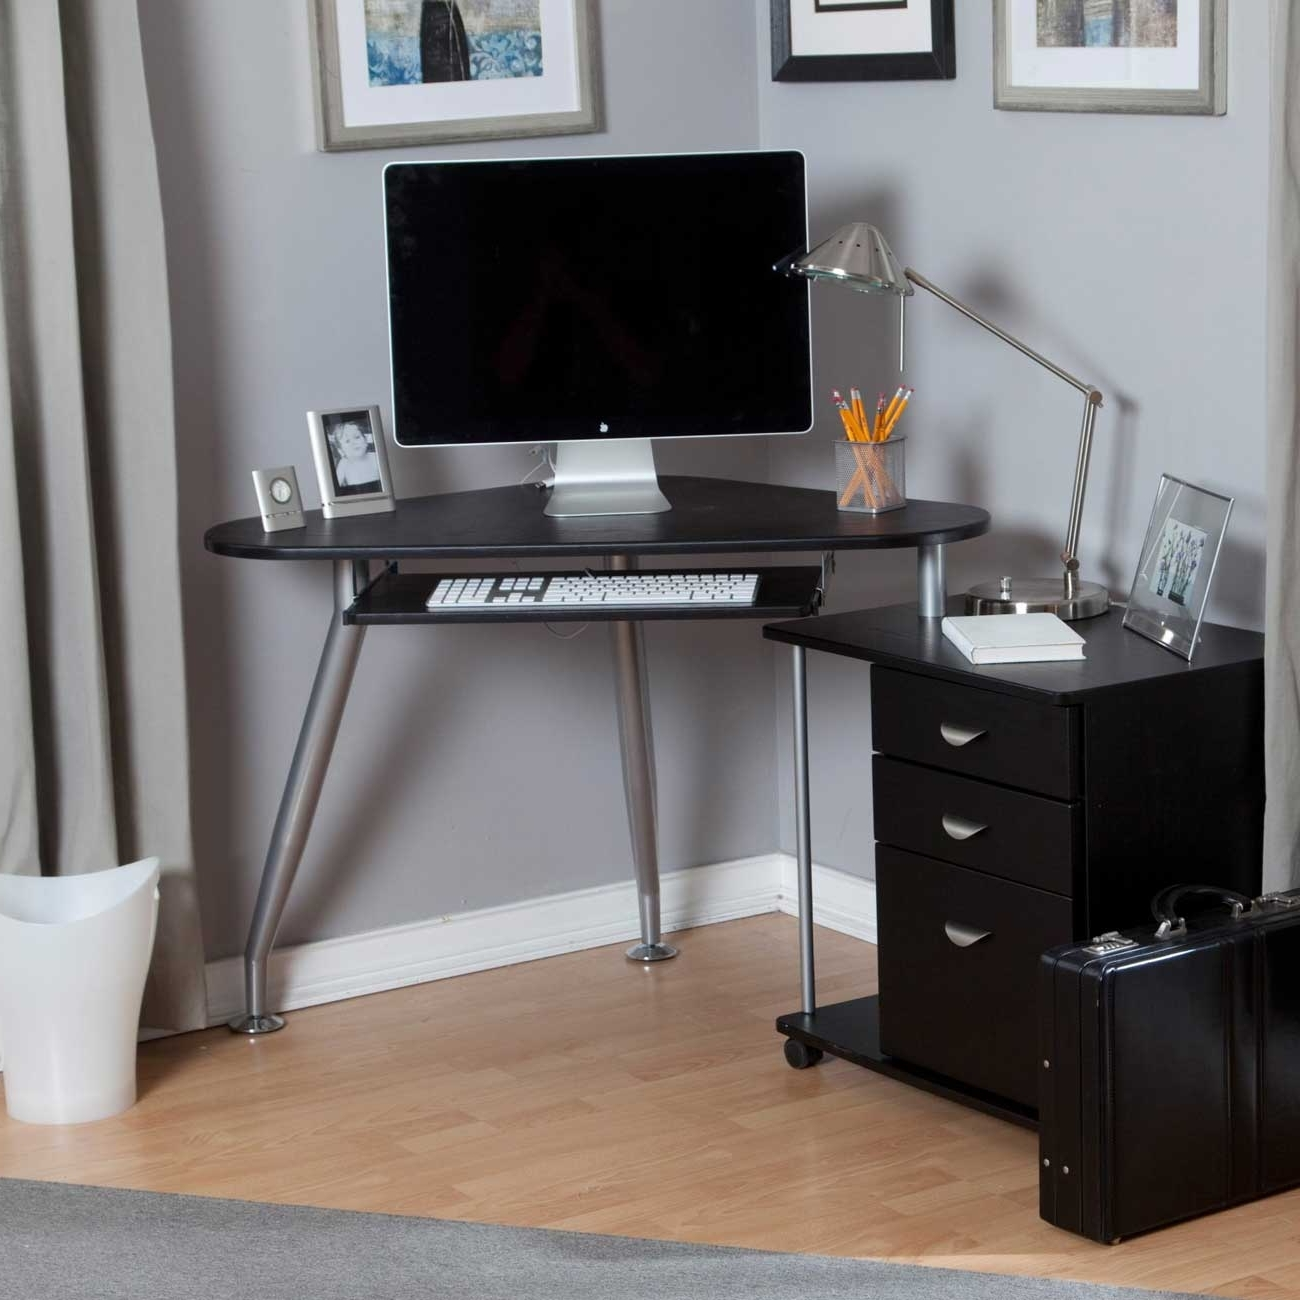 Well Liked Computer Desks For Very Small Spaces Regarding Best Small Corner Computer Desk — Interior Exterior Homie (View 19 of 20)